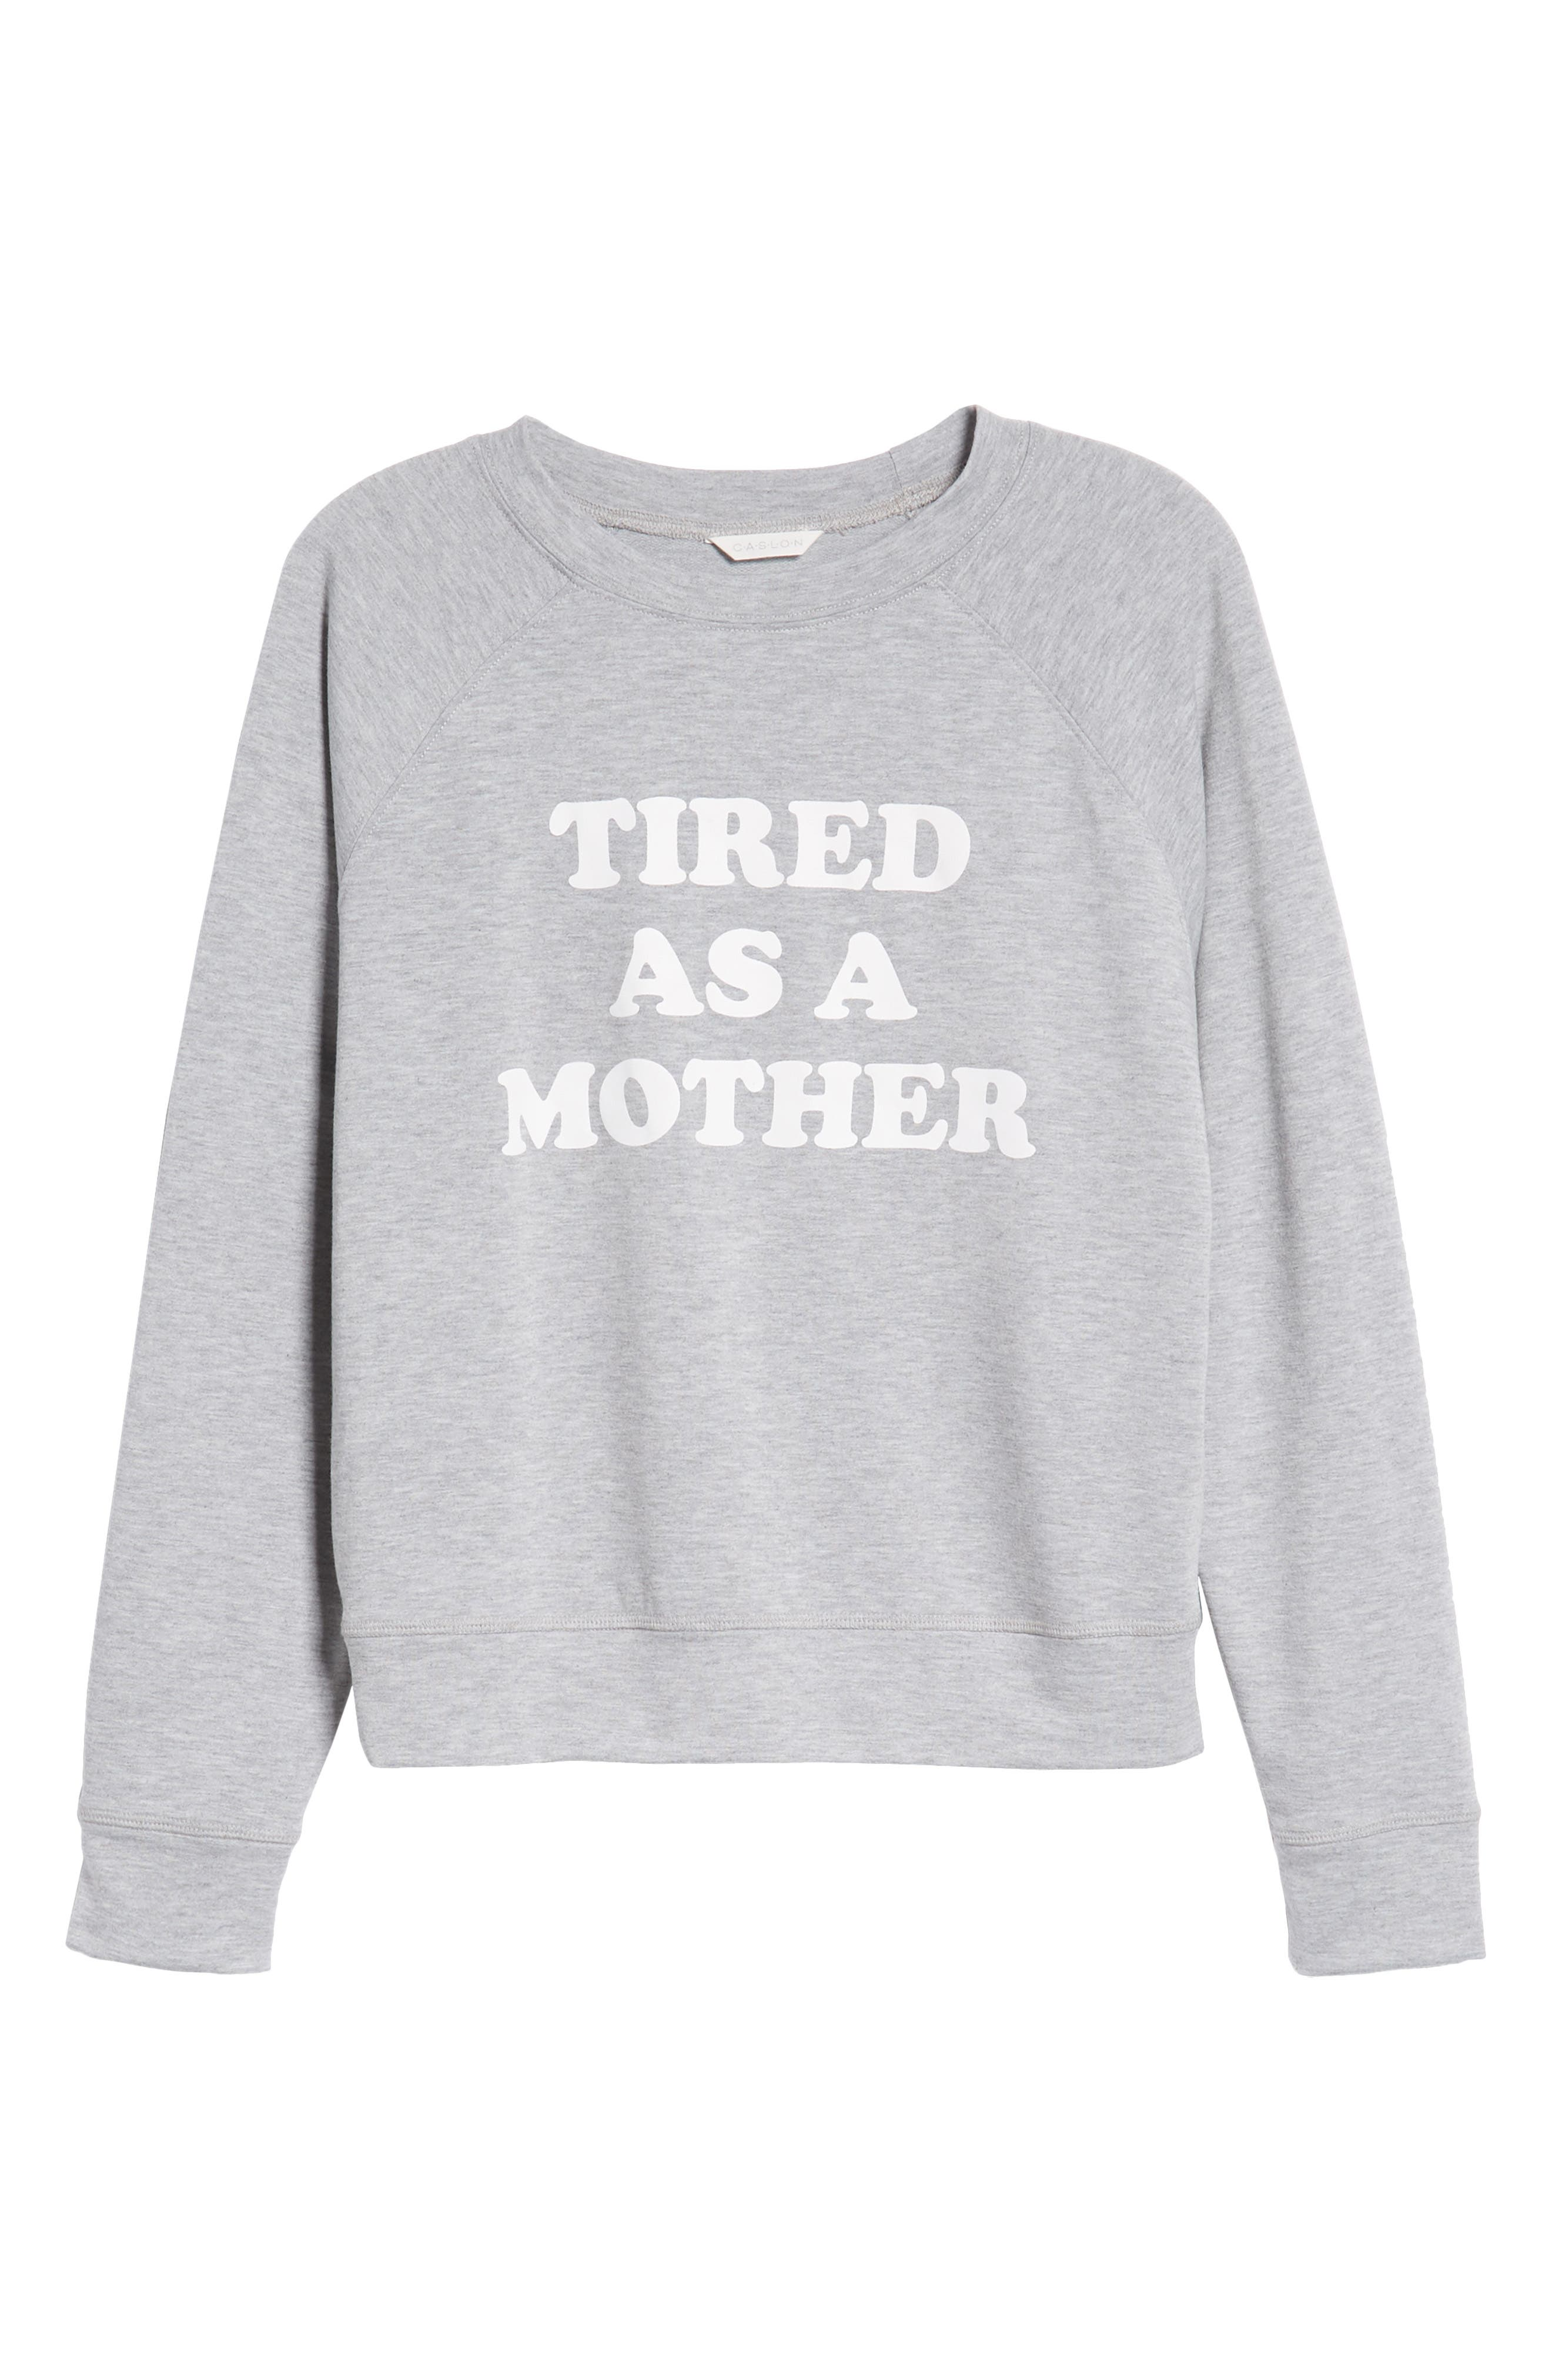 Off-Duty Tired as a Mother Sweatshirt,                             Alternate thumbnail 6, color,